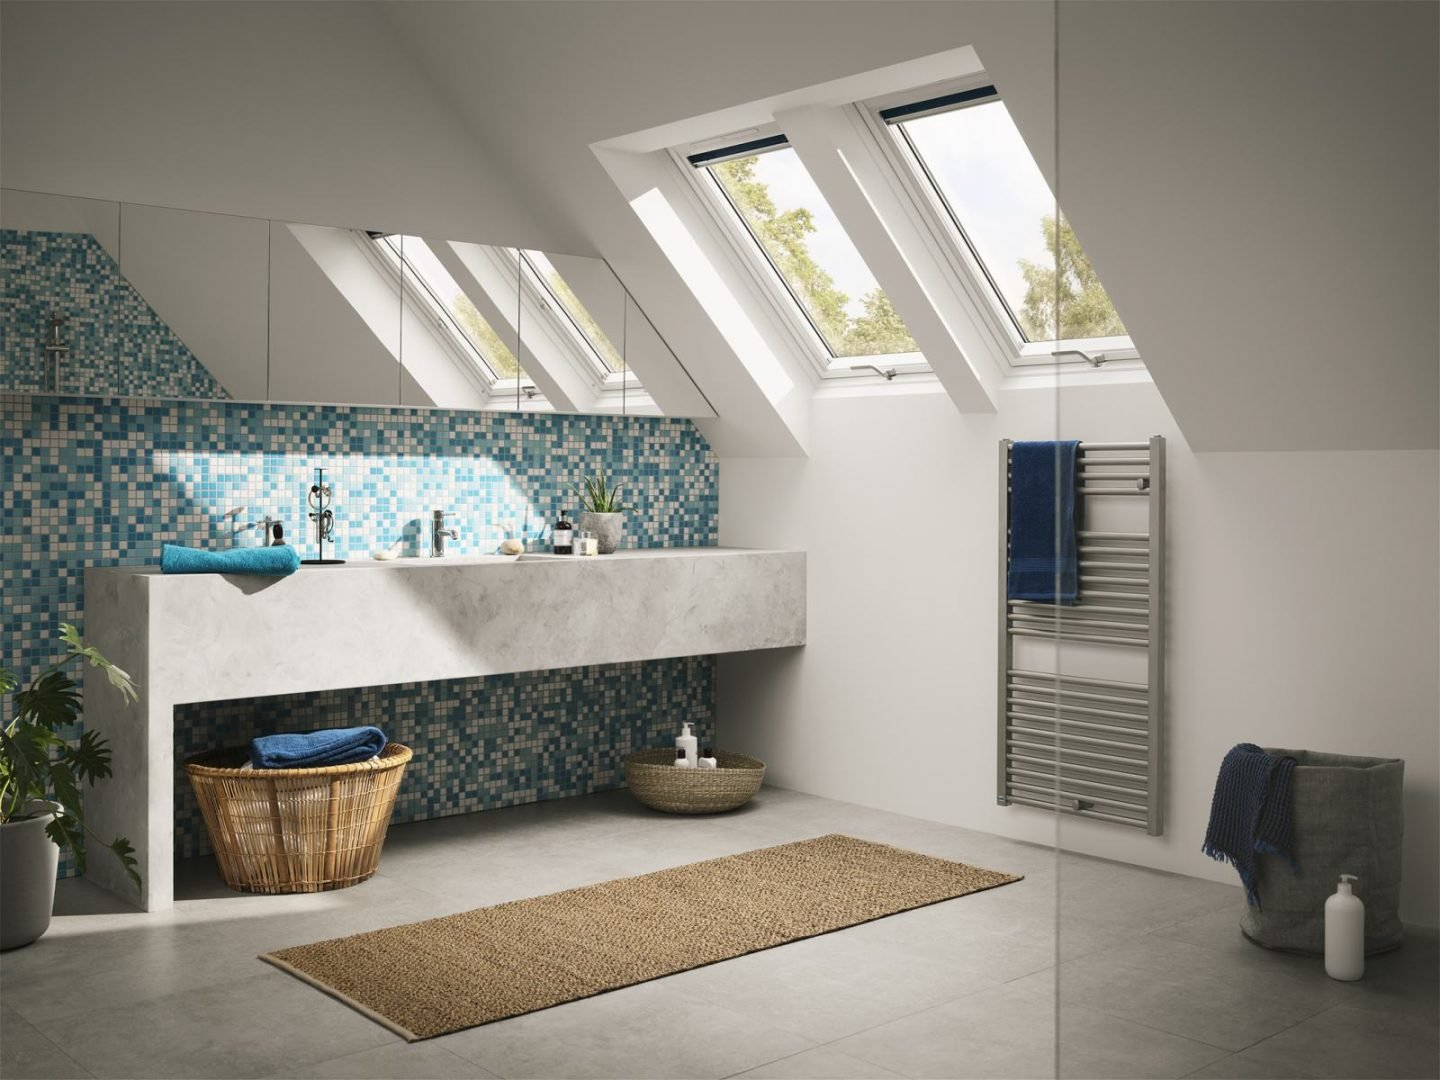 Loft Bathroom Ideas To Create Space And Light